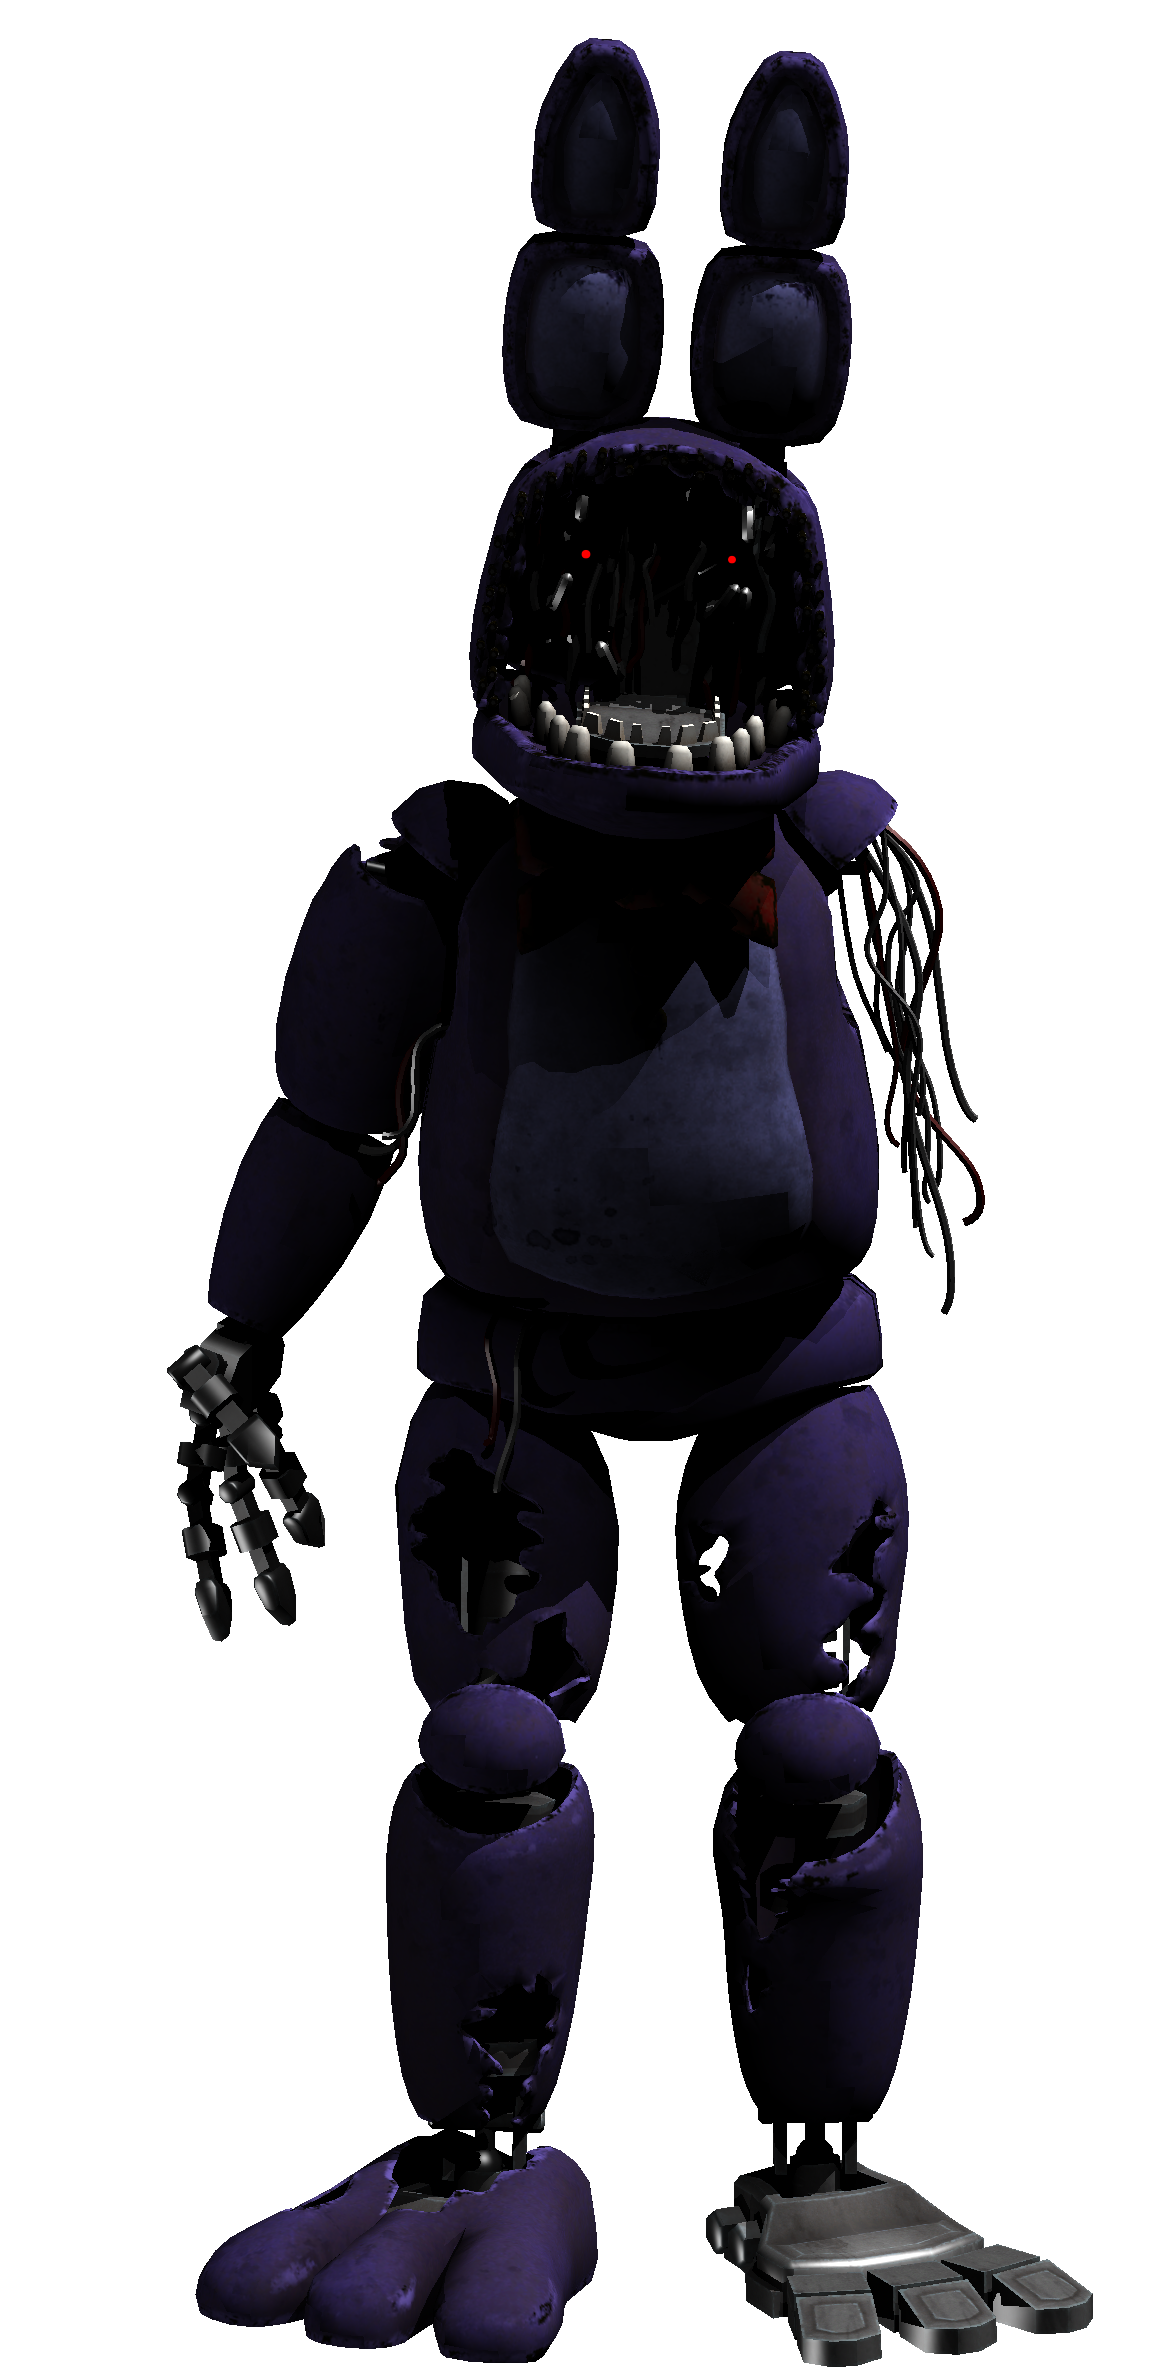 Withered Bonnie | FNaF: The Novel Wiki | FANDOM powered by ...